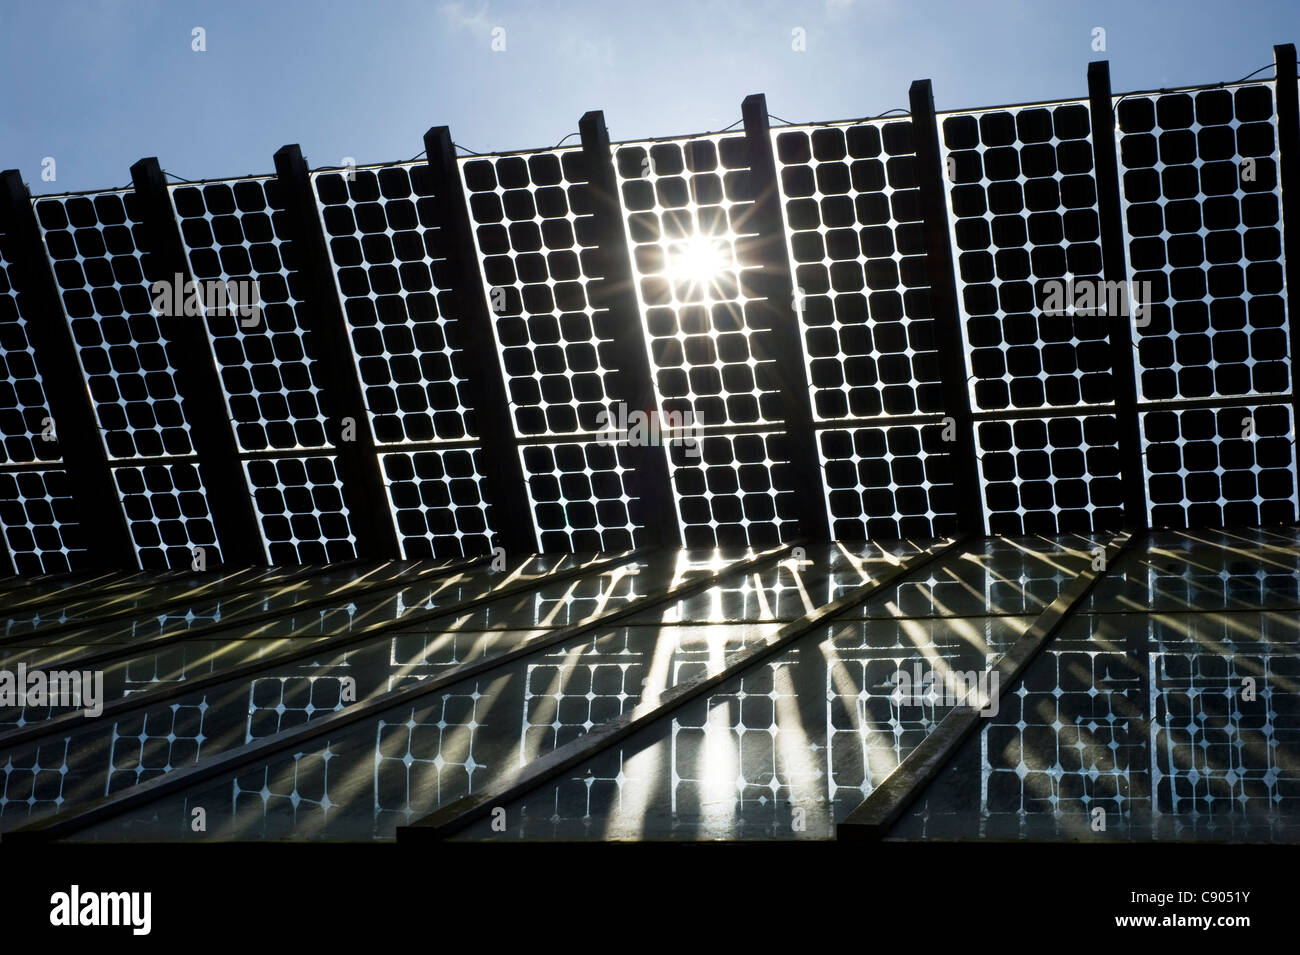 Photovoltaic panels on a solar powered roof - Stock Image